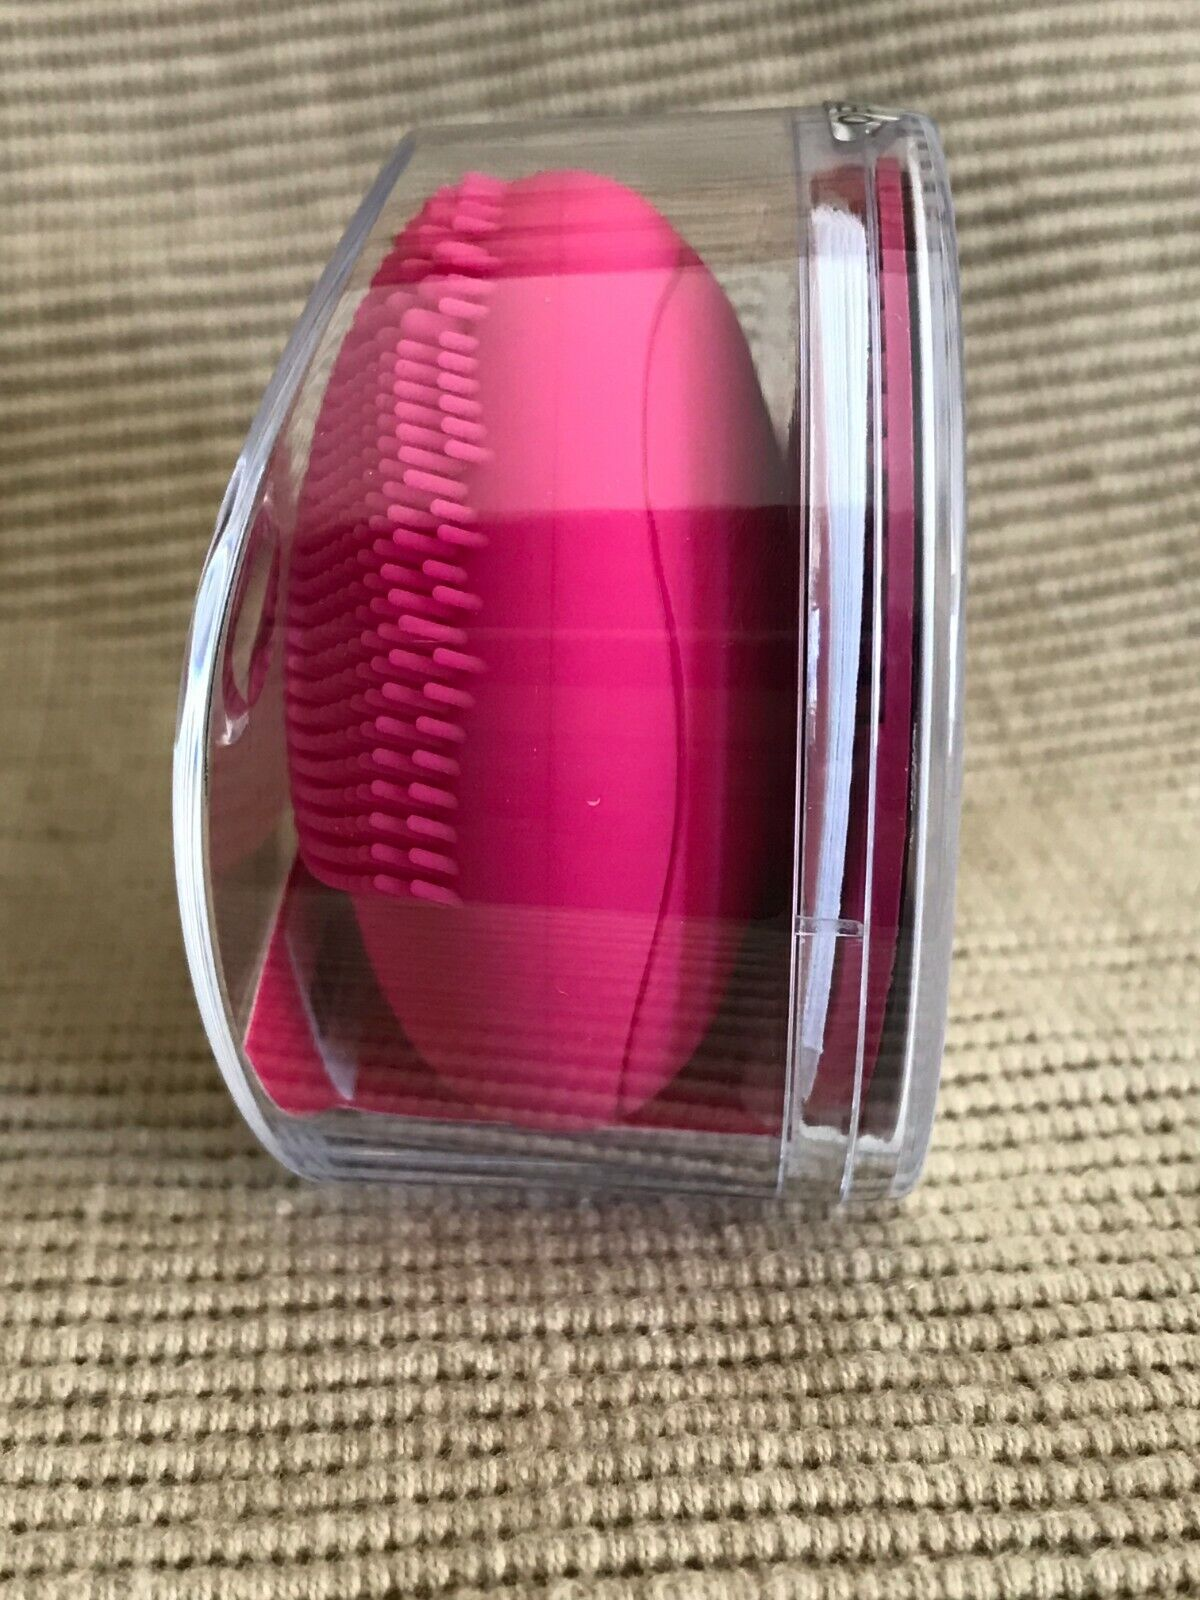 New Sealed Foreo Luna Play Tiny Mighty T-Sonic Facial Cleansing Device Fuchsia - $39.99